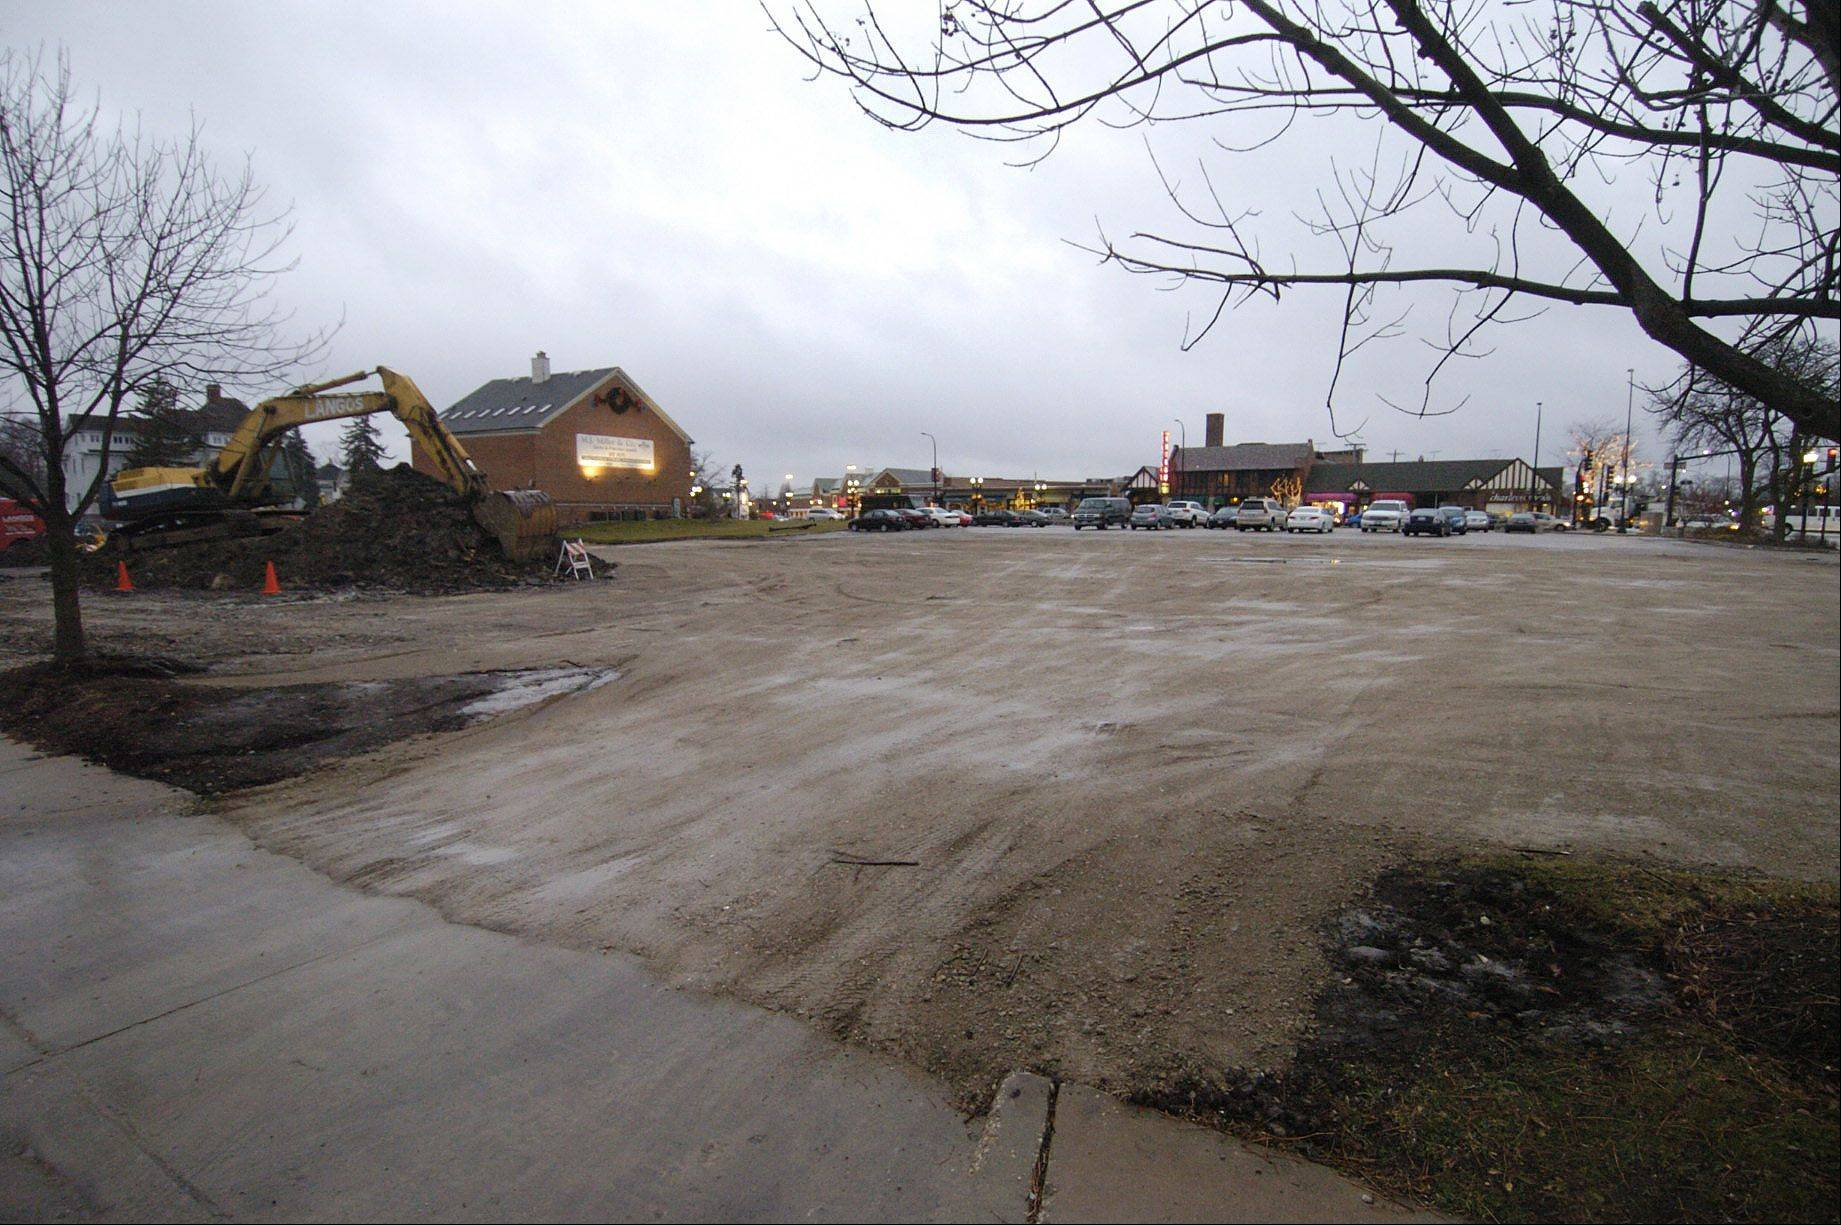 Before new stores can be built on this vacant site in downtown Barrington, the village must complete the replacement of its 114-year-old water main underneath Lake-Cook Road, in the background of this photo.